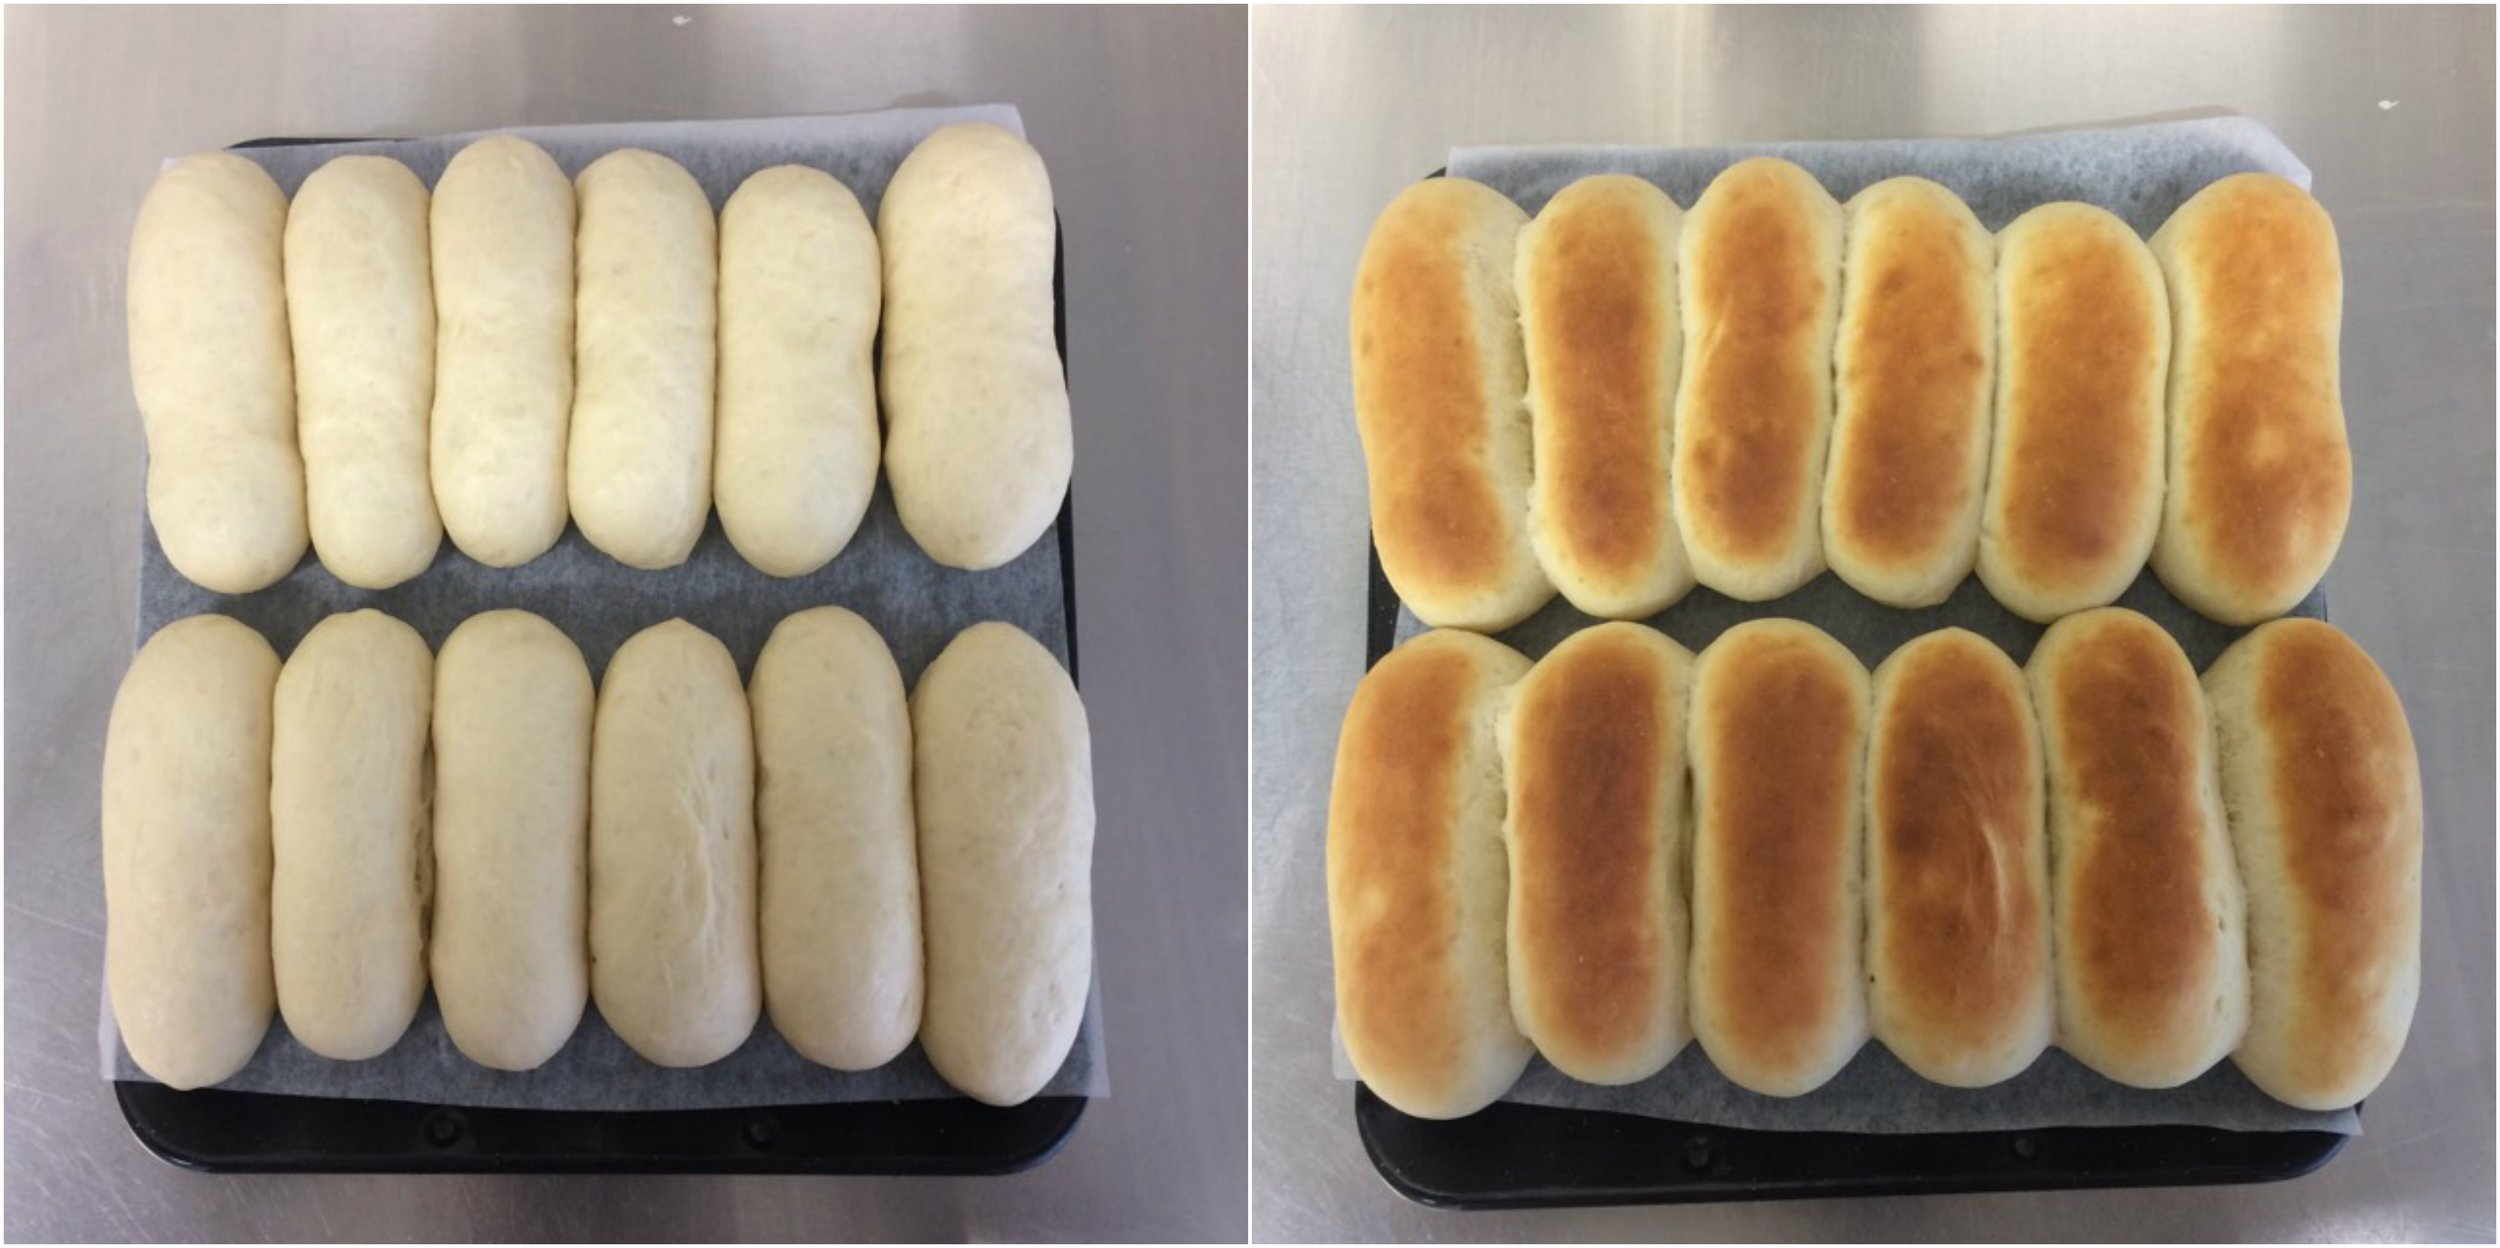 GBBO Technical Challenge S2E7 - Iced Buns